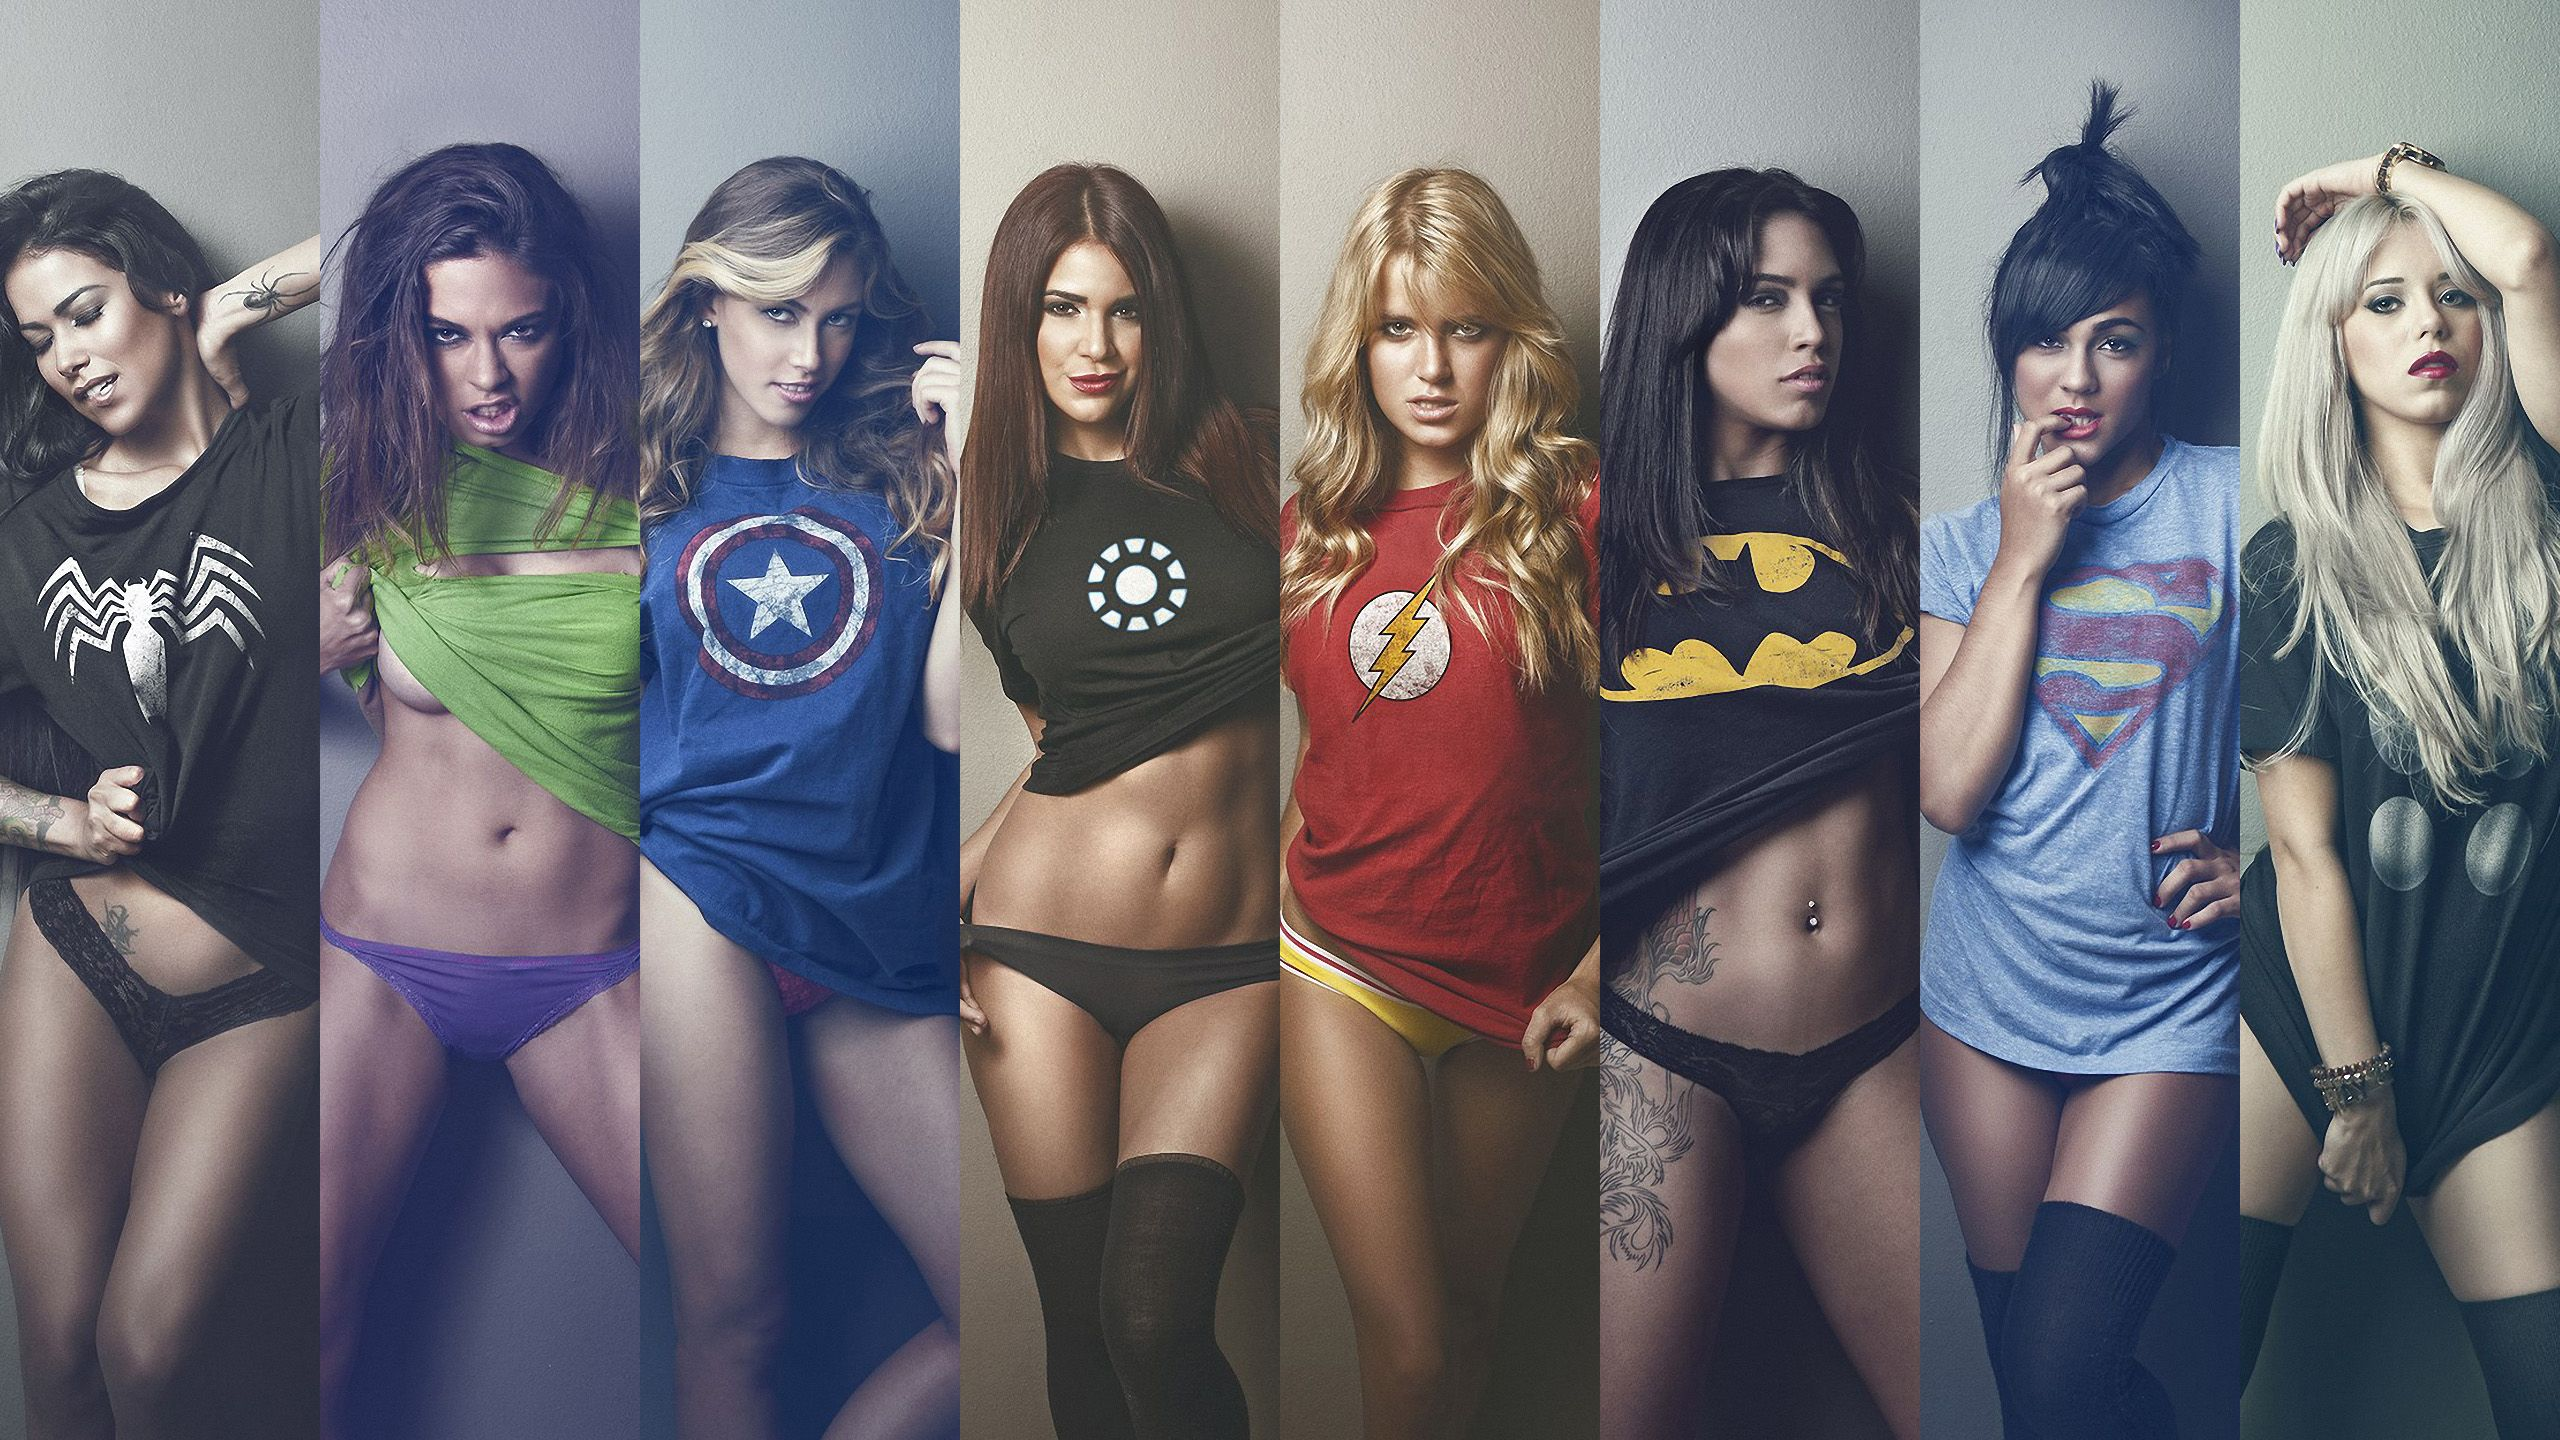 Girls Wearing Superhero Shirts Wallpaper 2560x1440